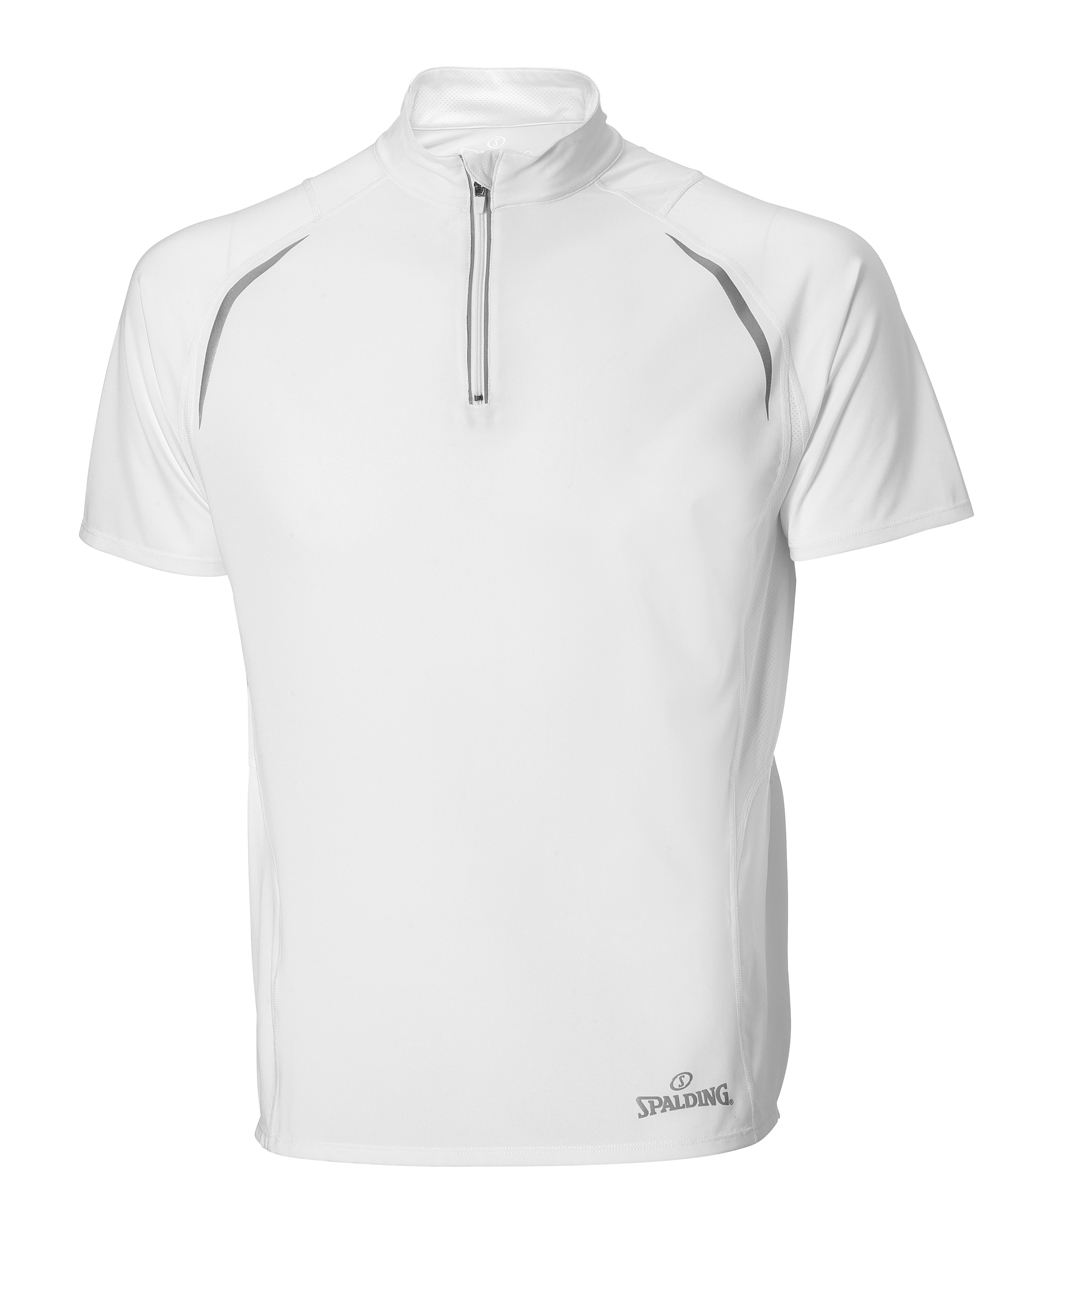 Spalding endurance Heren Zip Top Wit